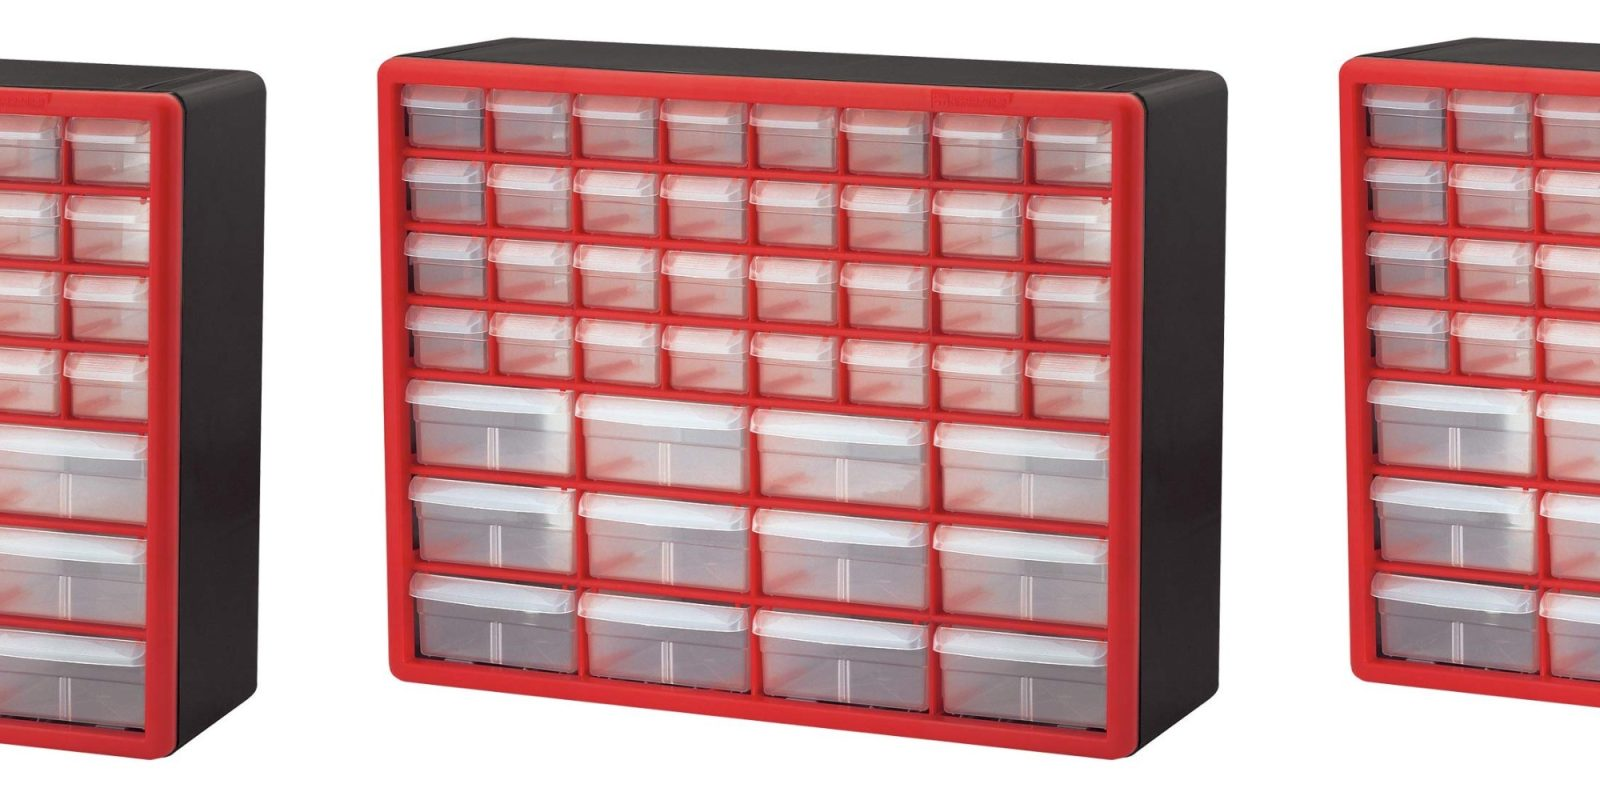 This 44-drawer storage system is ideal for LEGO builders or DIYers at 30% off